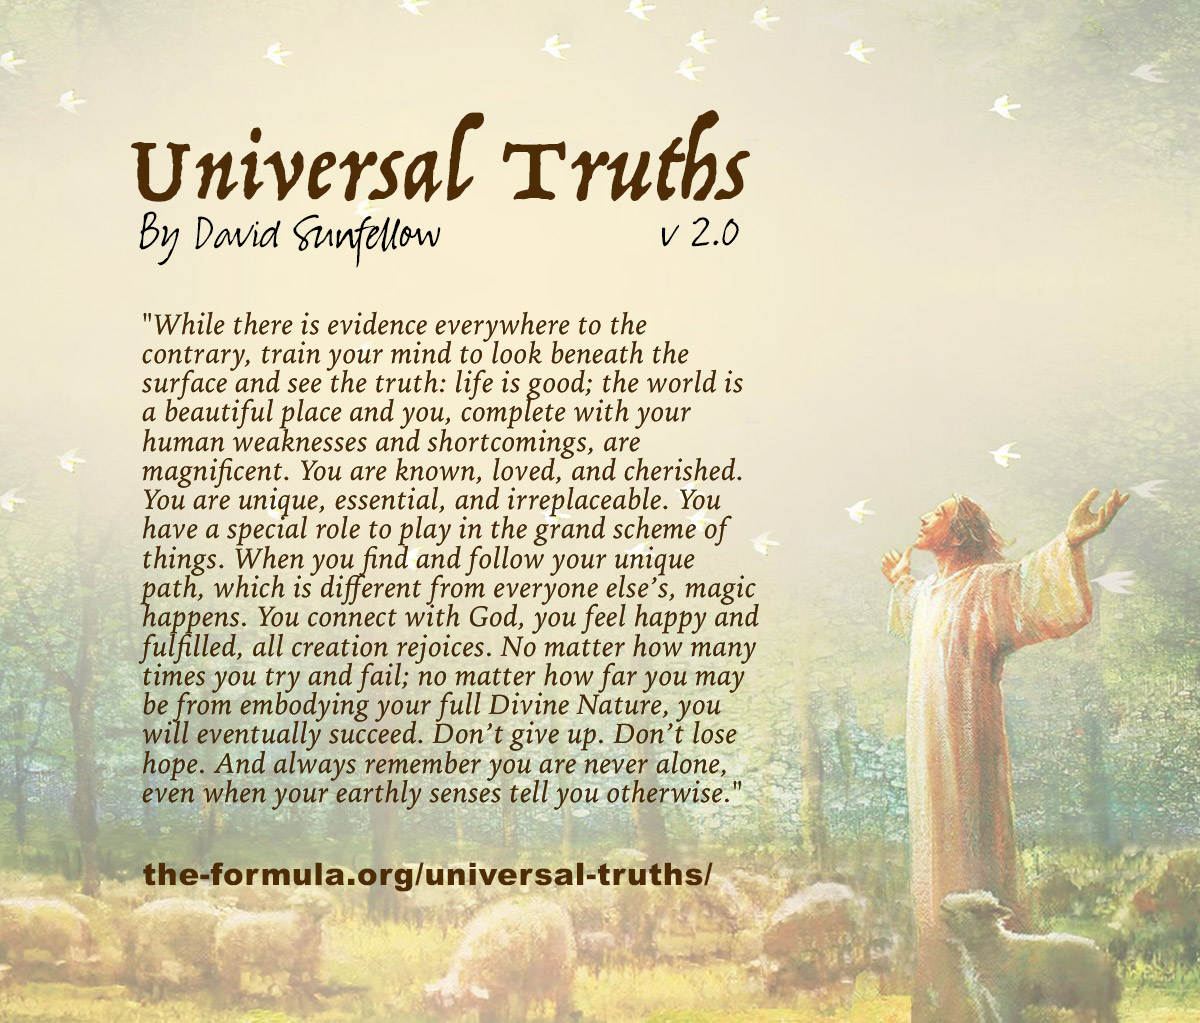 Universal-truths-v2.0a